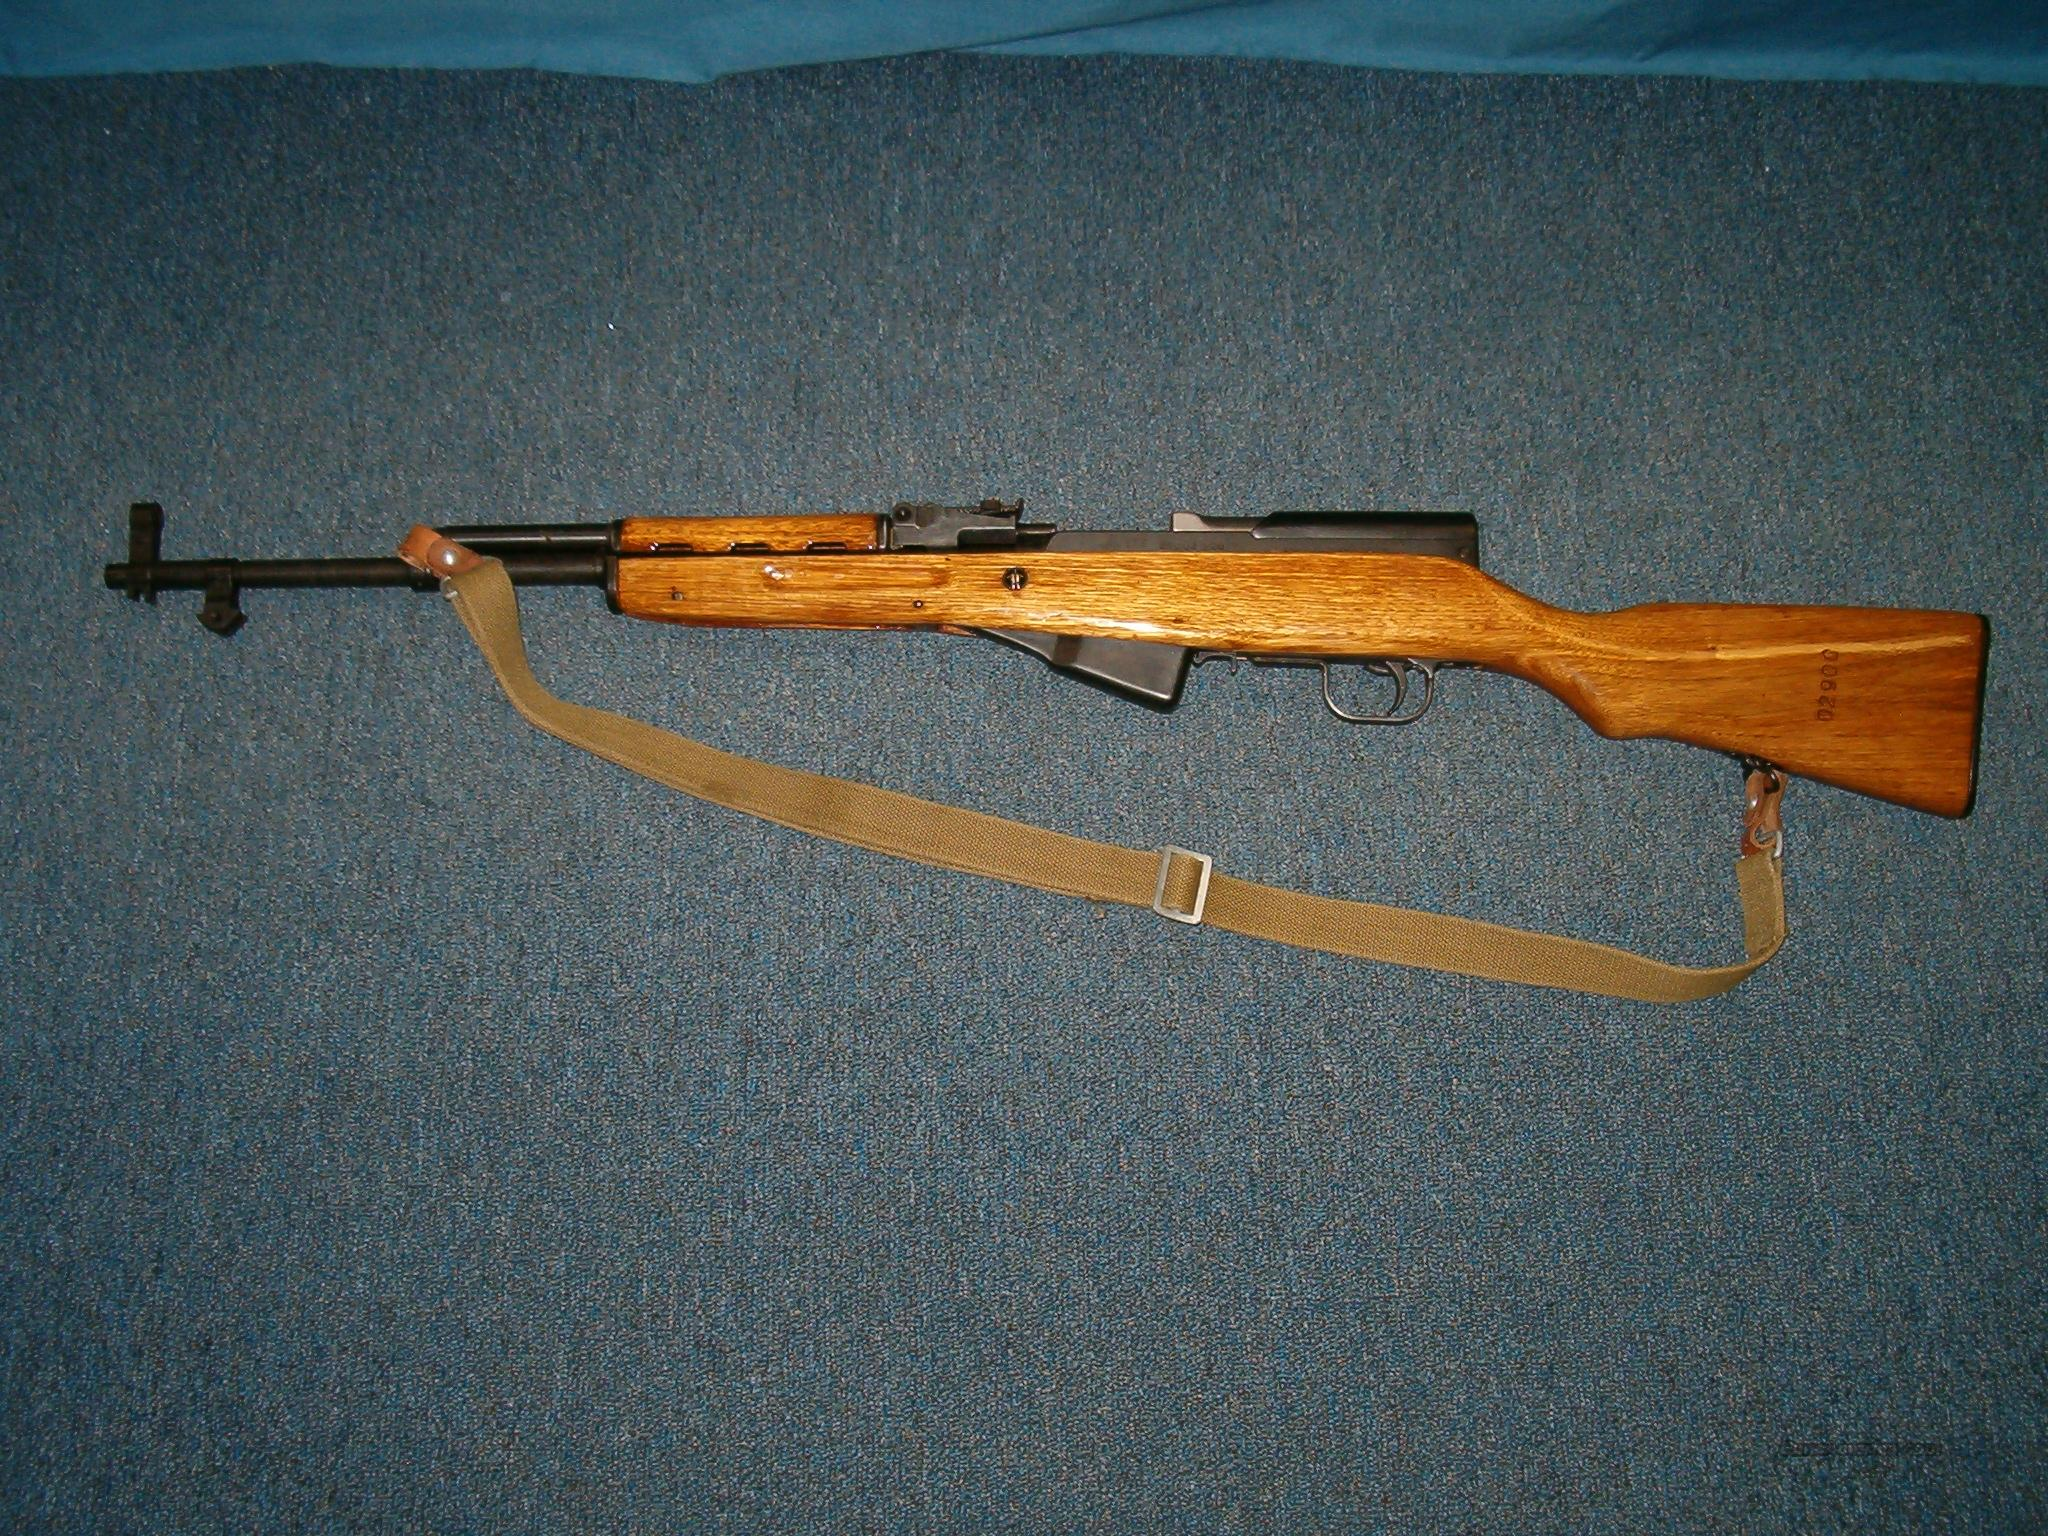 SKS 7.62x39 Rifle-Made in China  Guns > Rifles > SKS Rifles